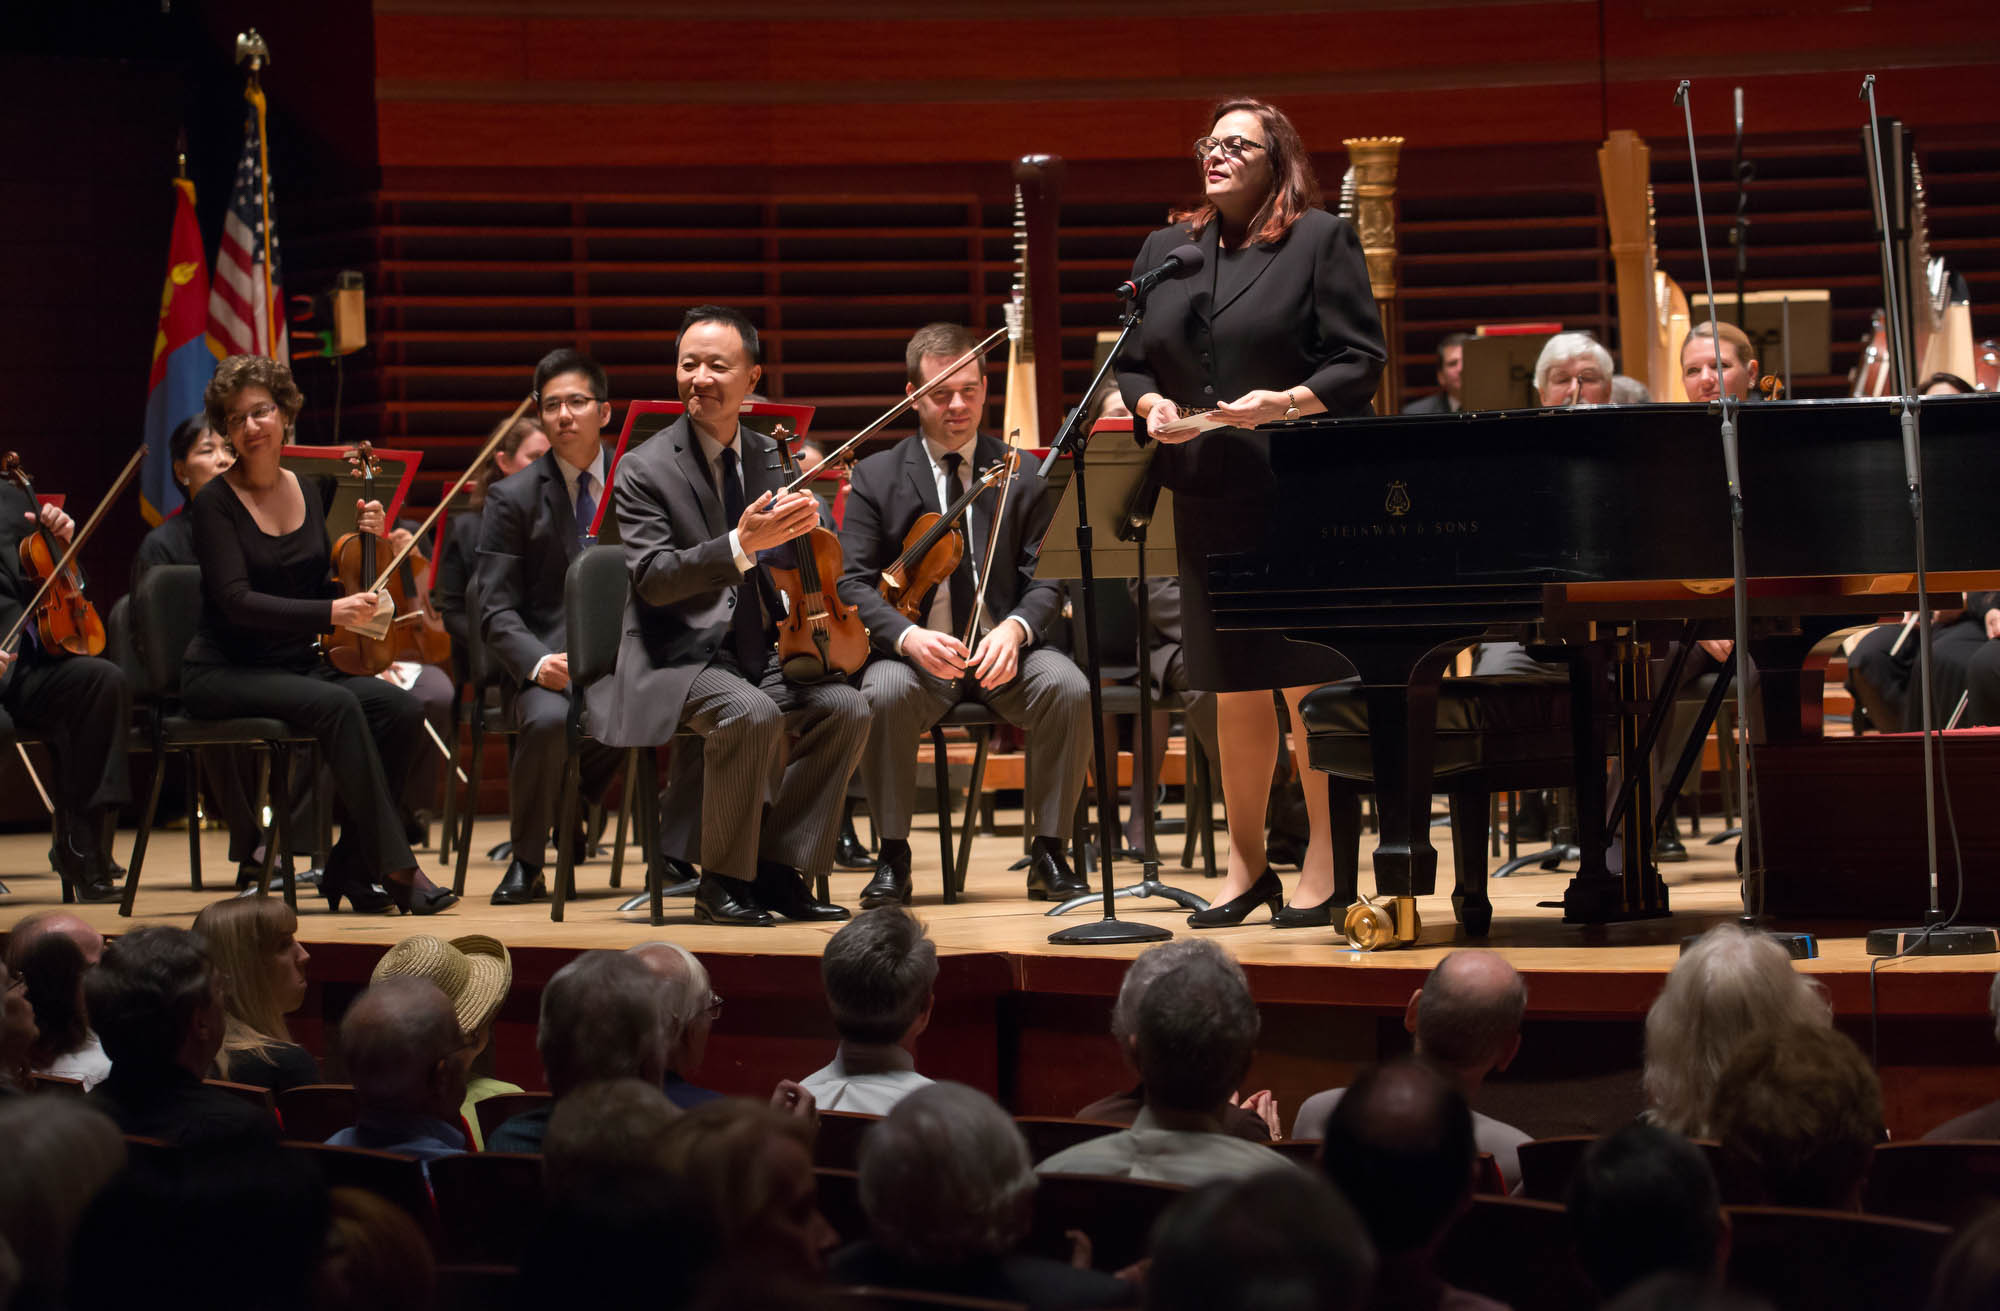 Woman standing at microphone onstage among sitting orchestra members (© Jessica Griffin/Philadelphia Orchestra)